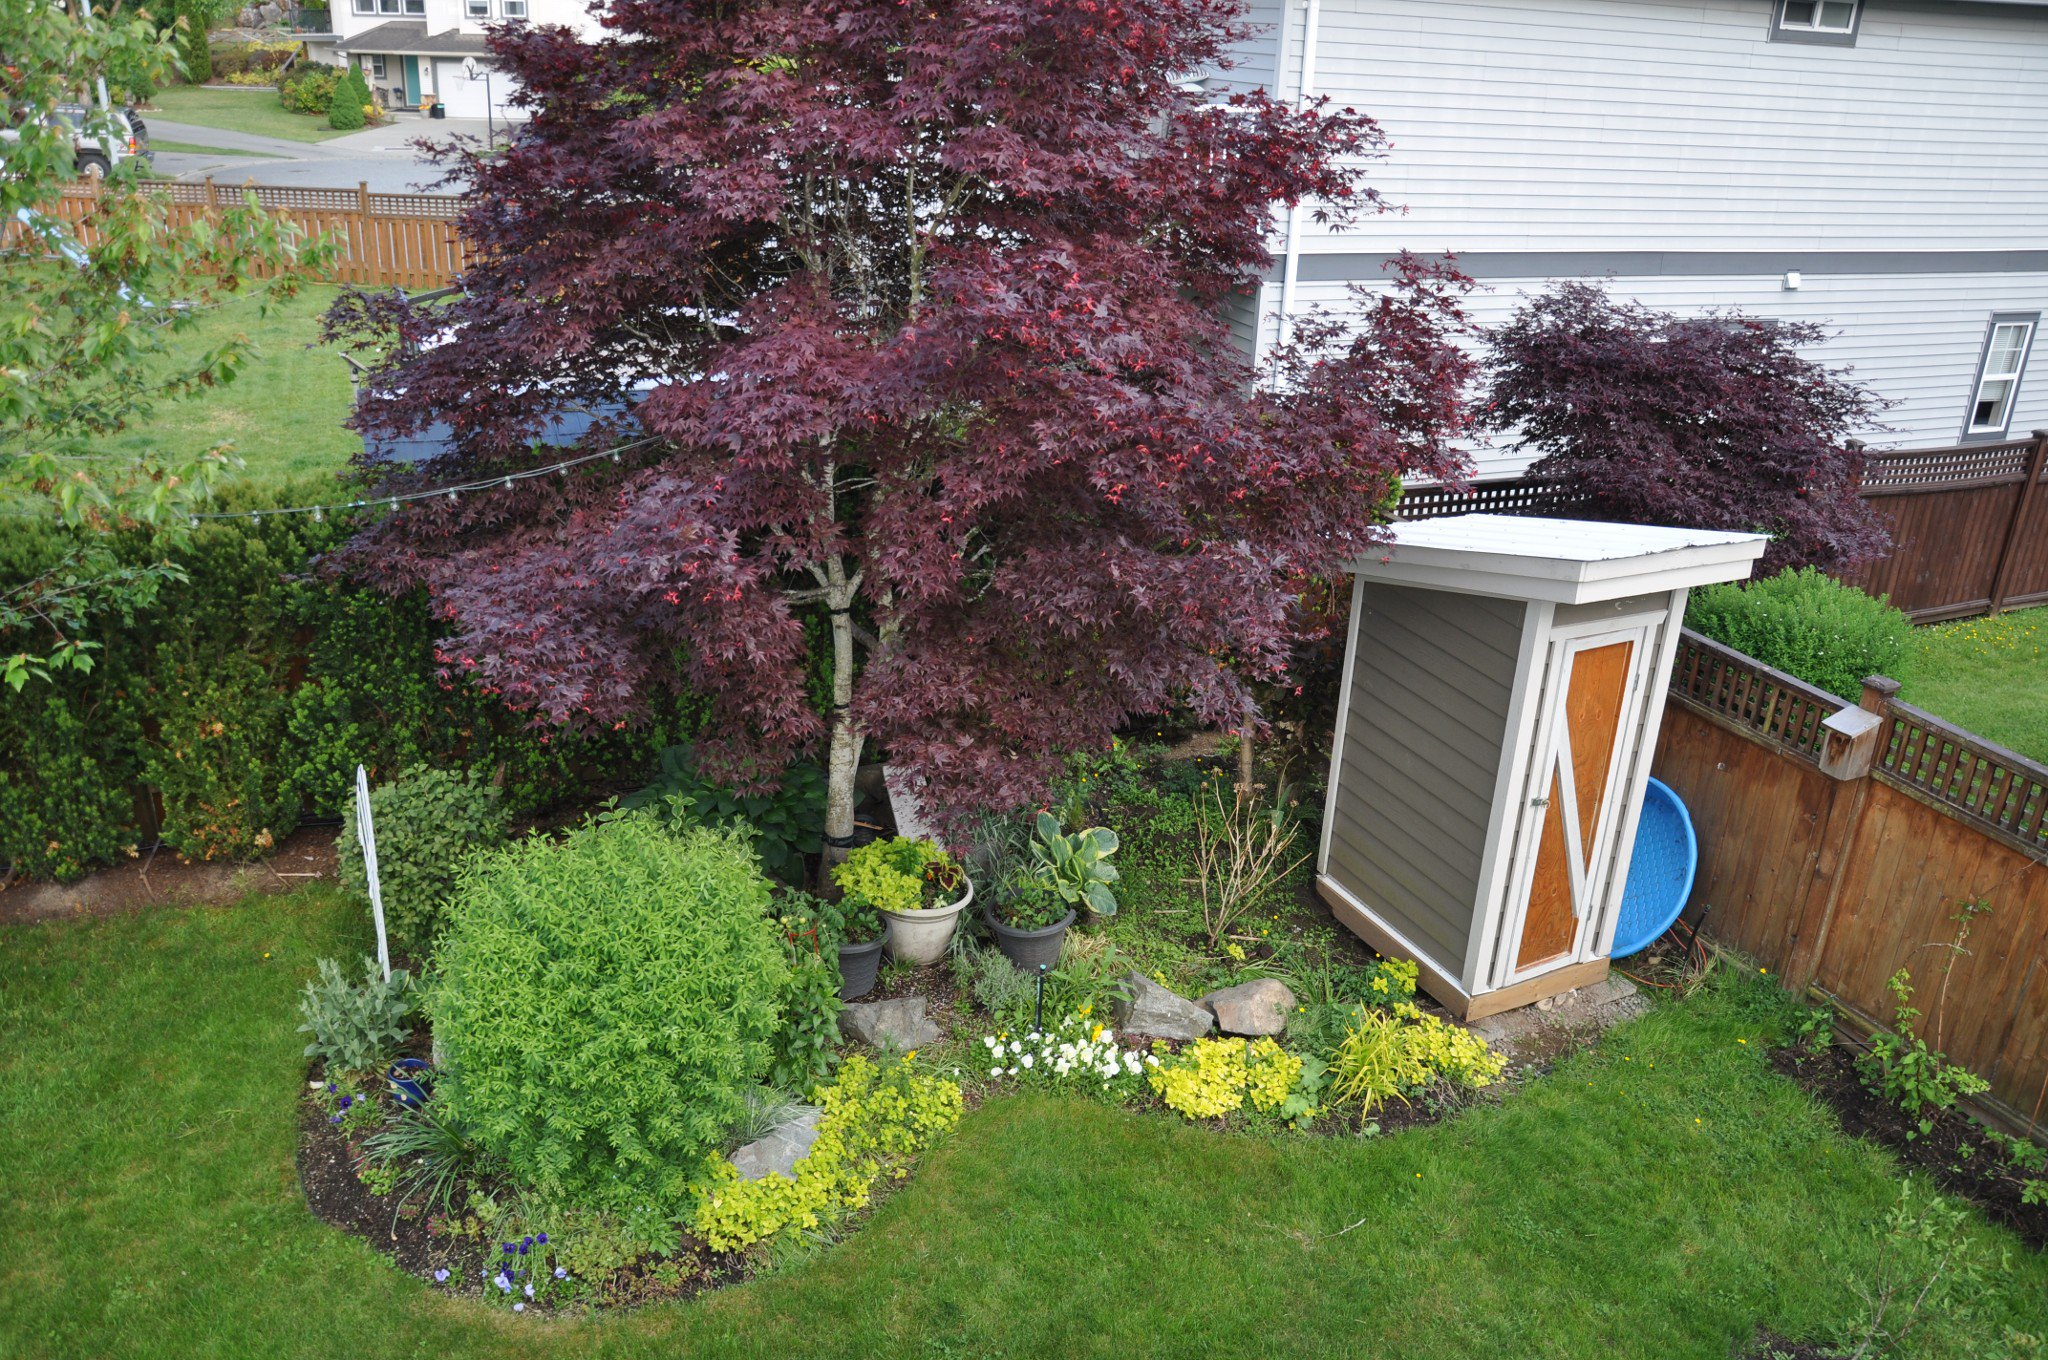 Photo 22: Photos: 4076 Channel St. in Abbotsford: Abbotsford East House for rent